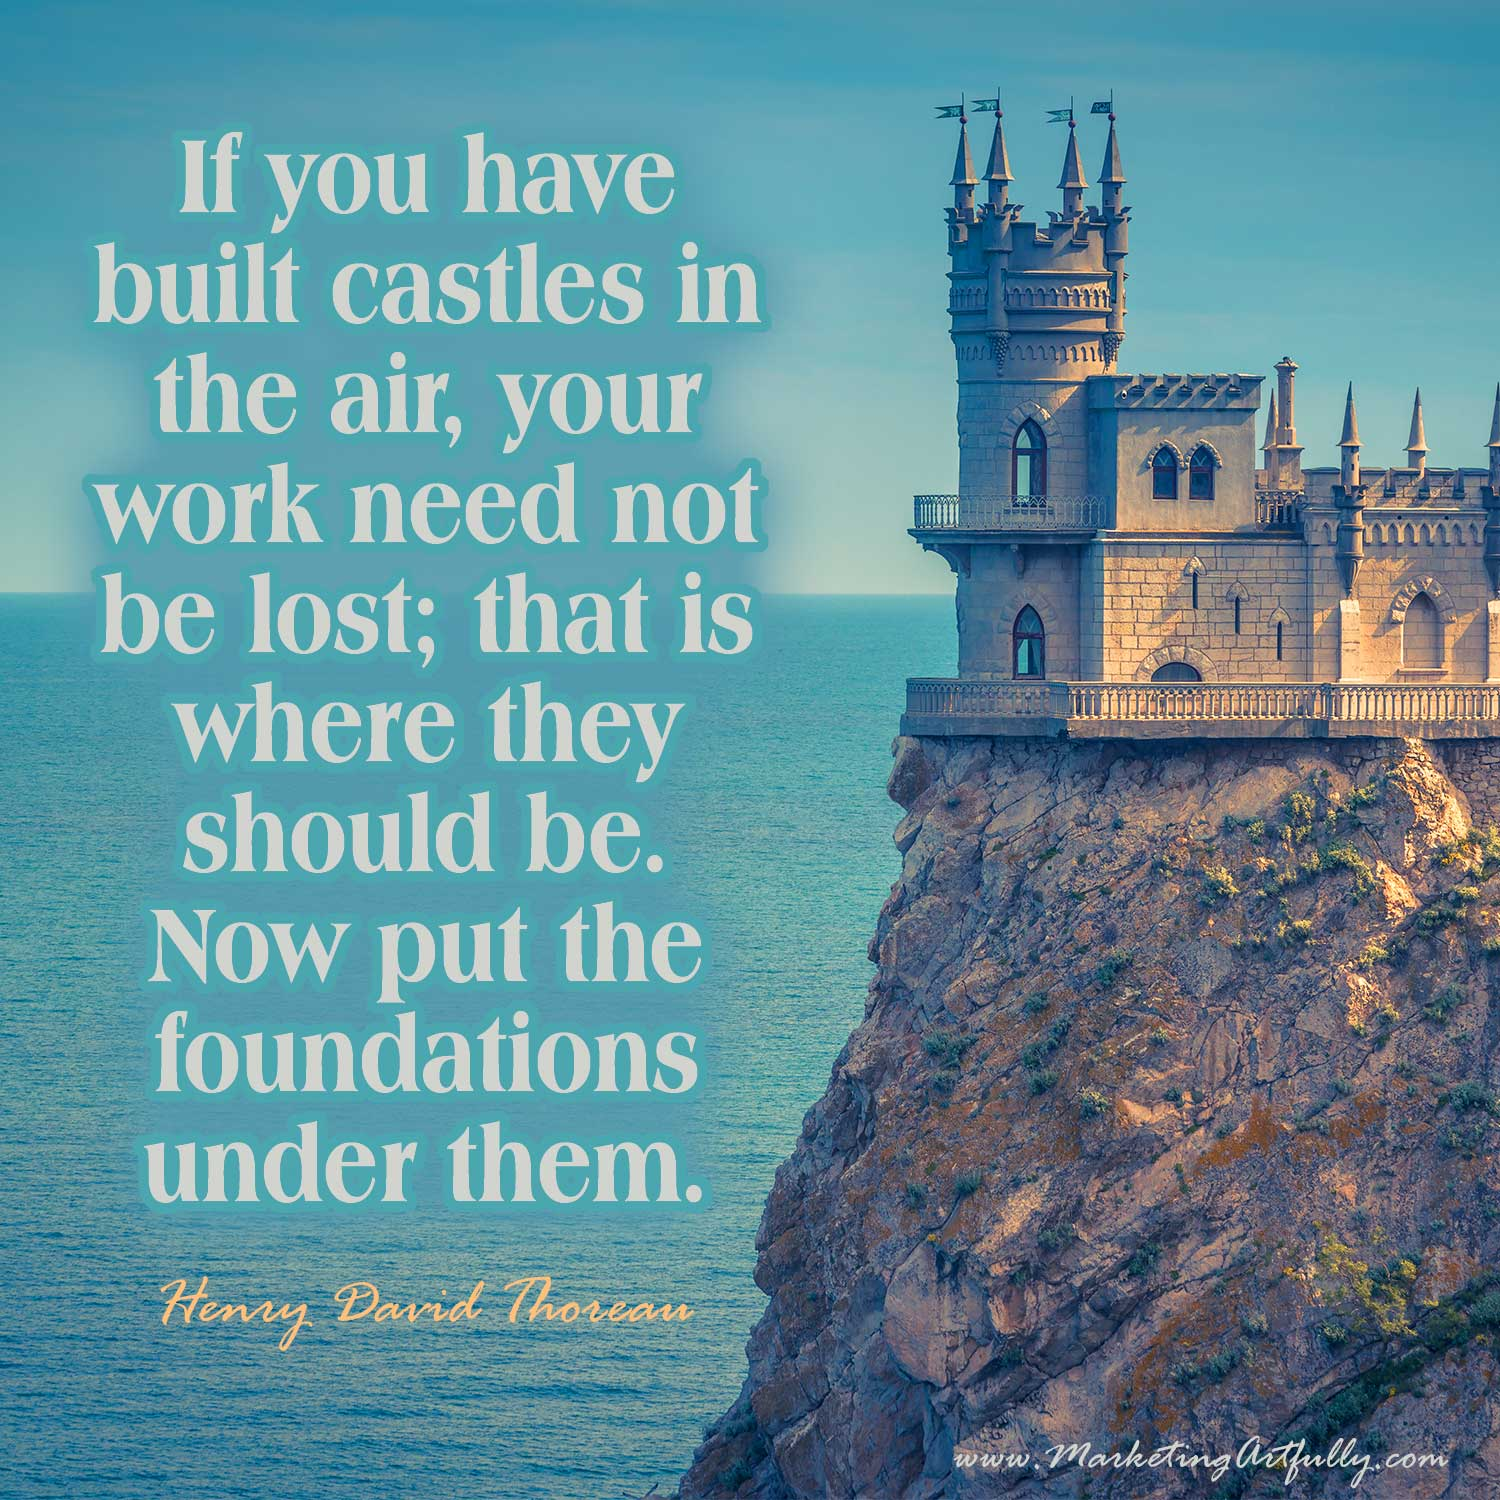 If you have built castles in the air, your work need not be lost; that is where they should be. Now put the foundations under them. Henry David Thoreau